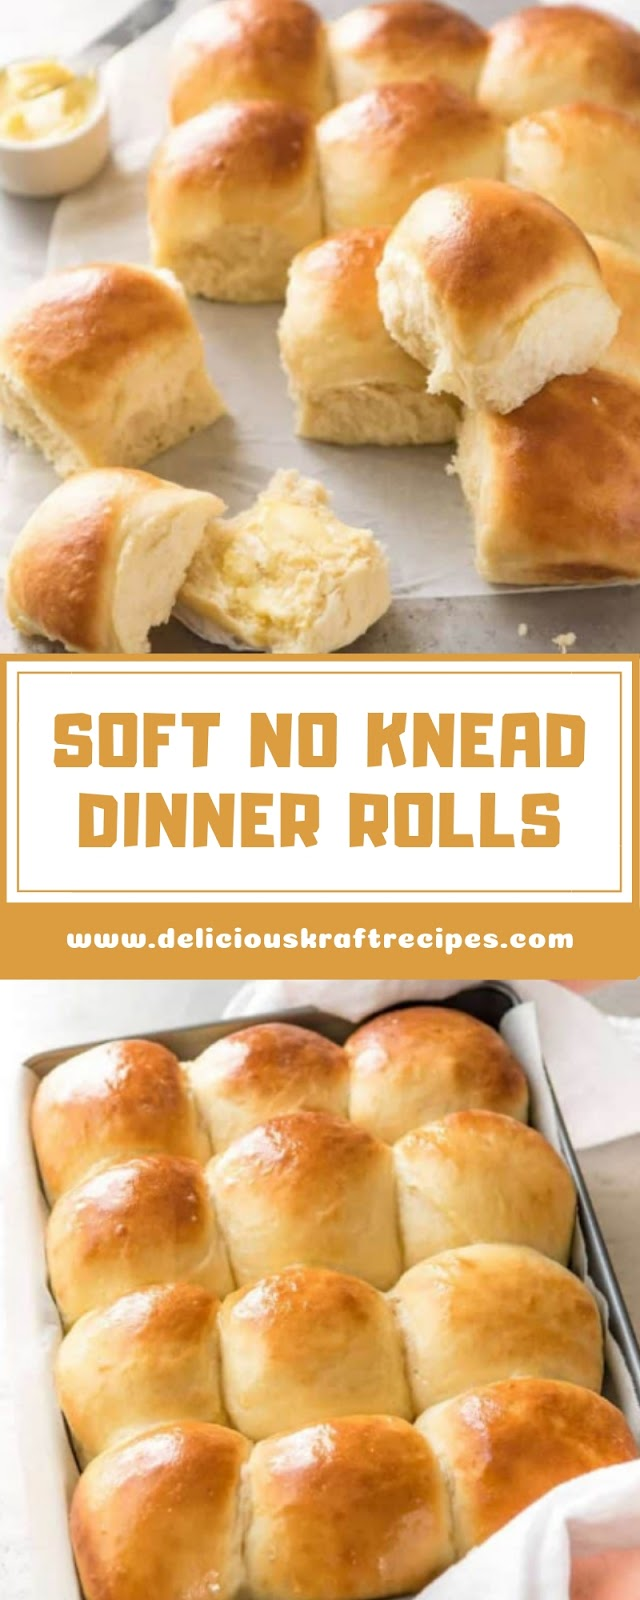 SOFT NO KNEAD DINNER ROLLS